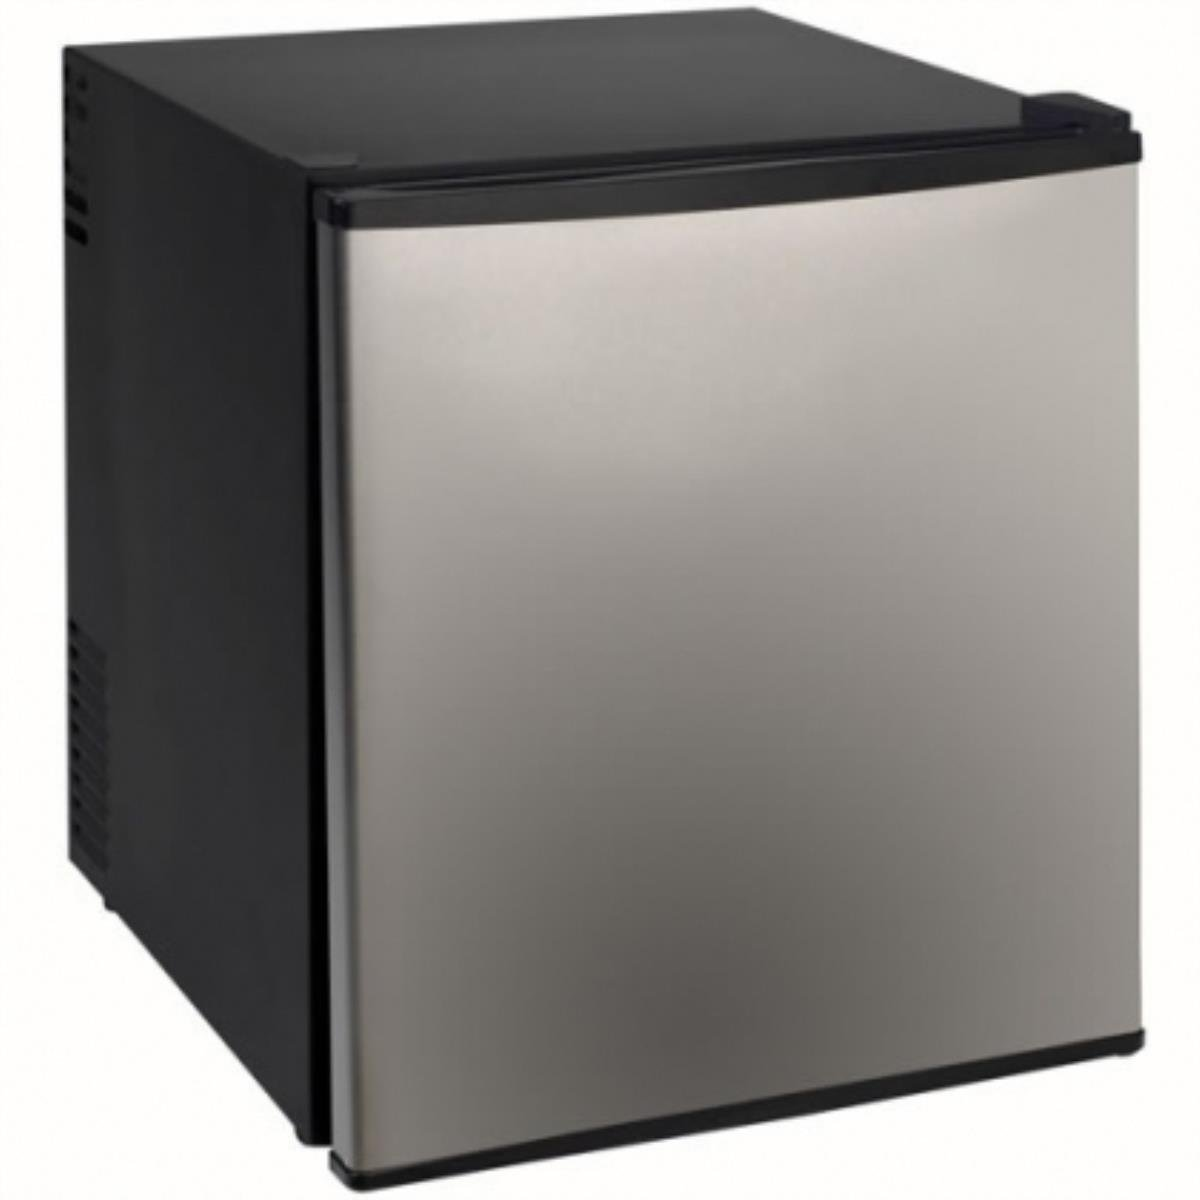 SHP1702SS Superconductor Refrigerator Slide out Reversible Image 1